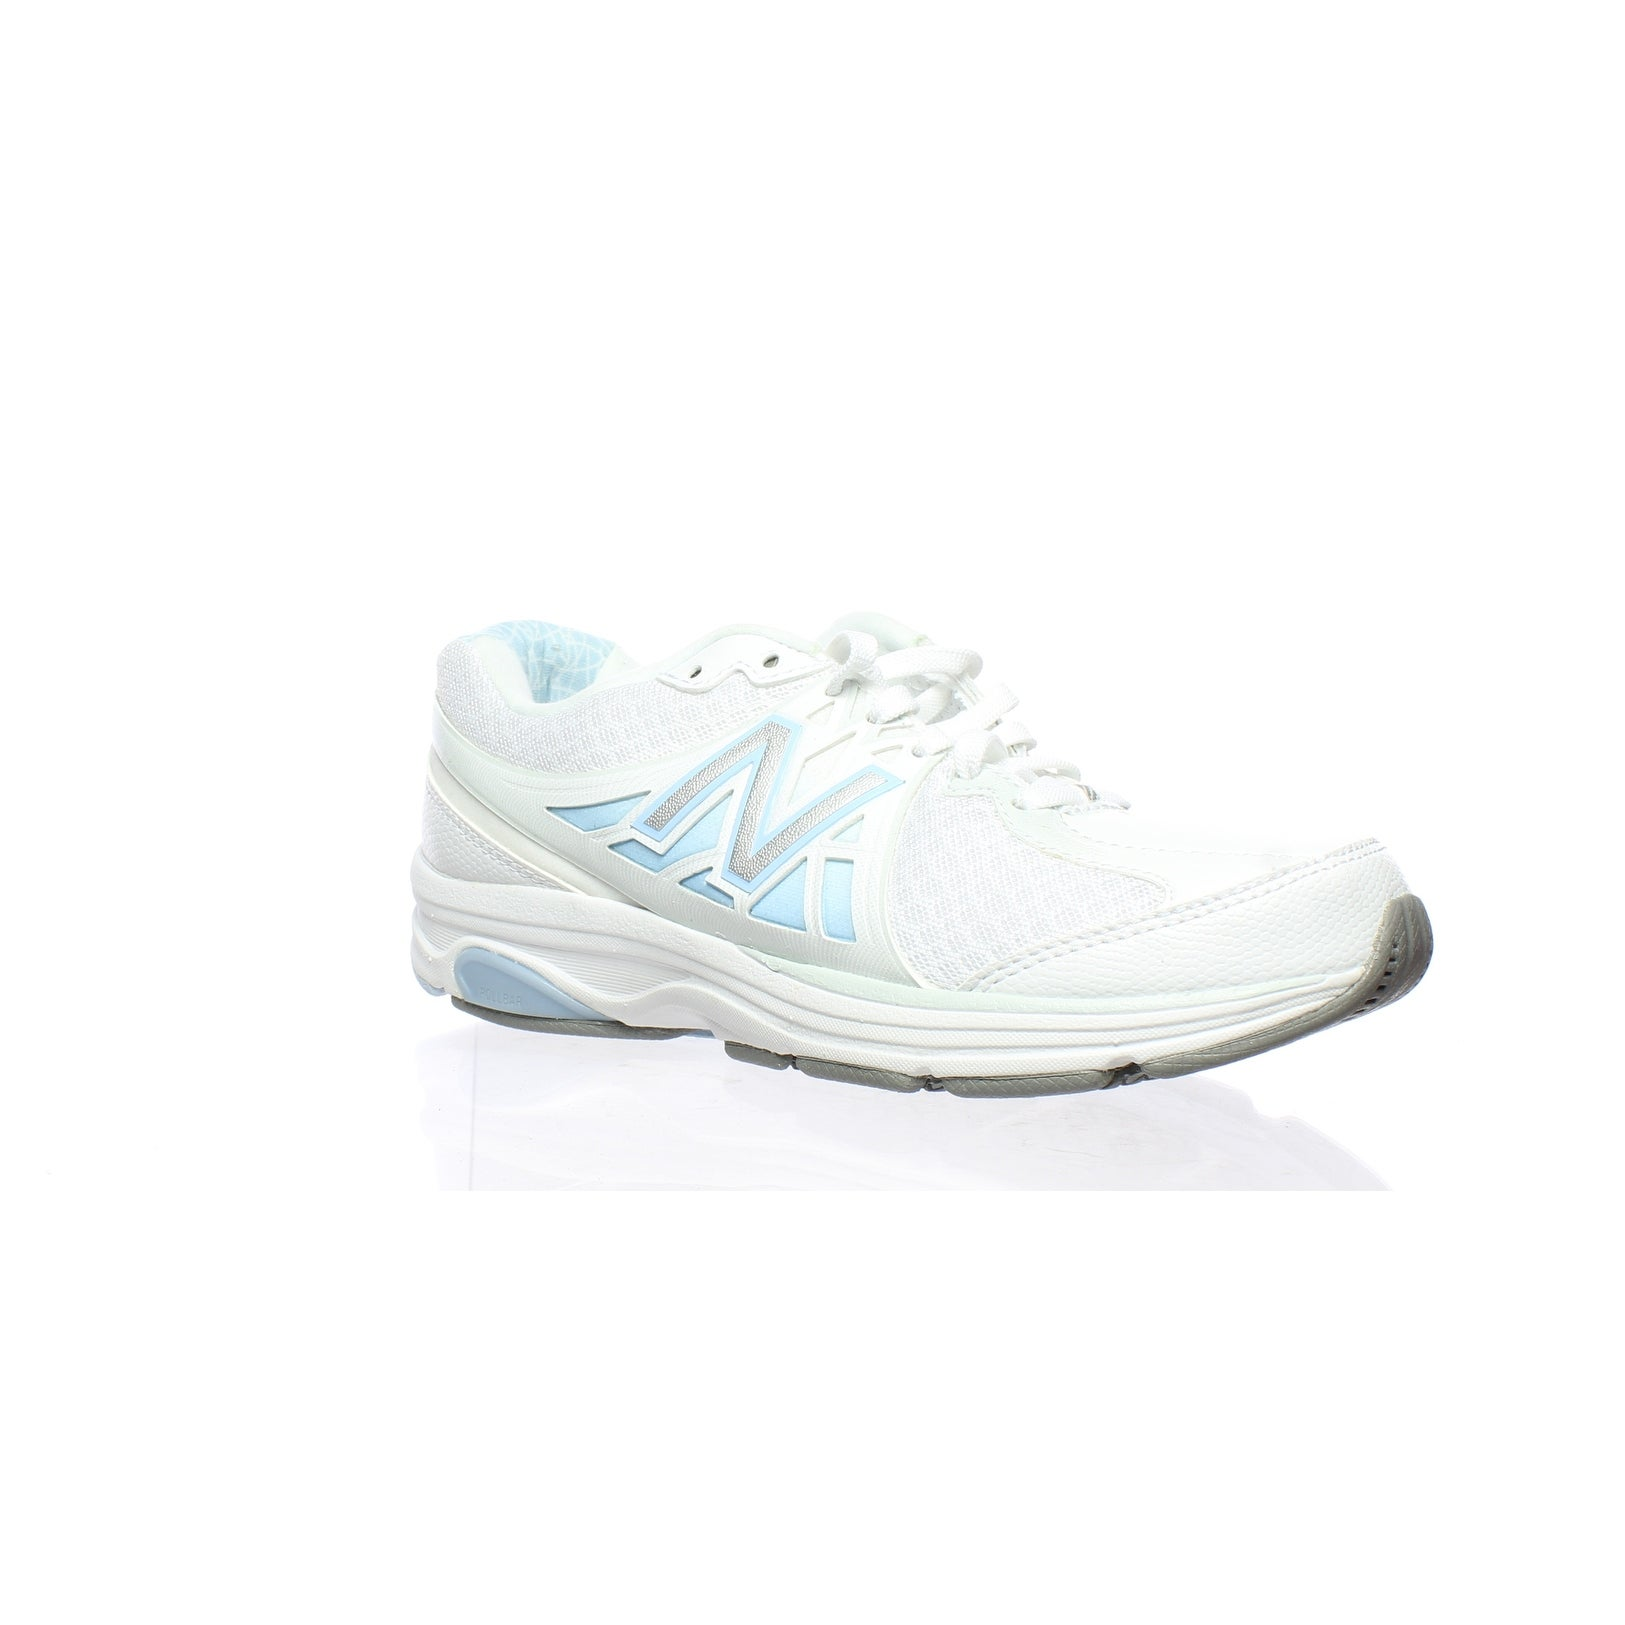 Walking Shoes Size 6 (AA,N) - Overstock